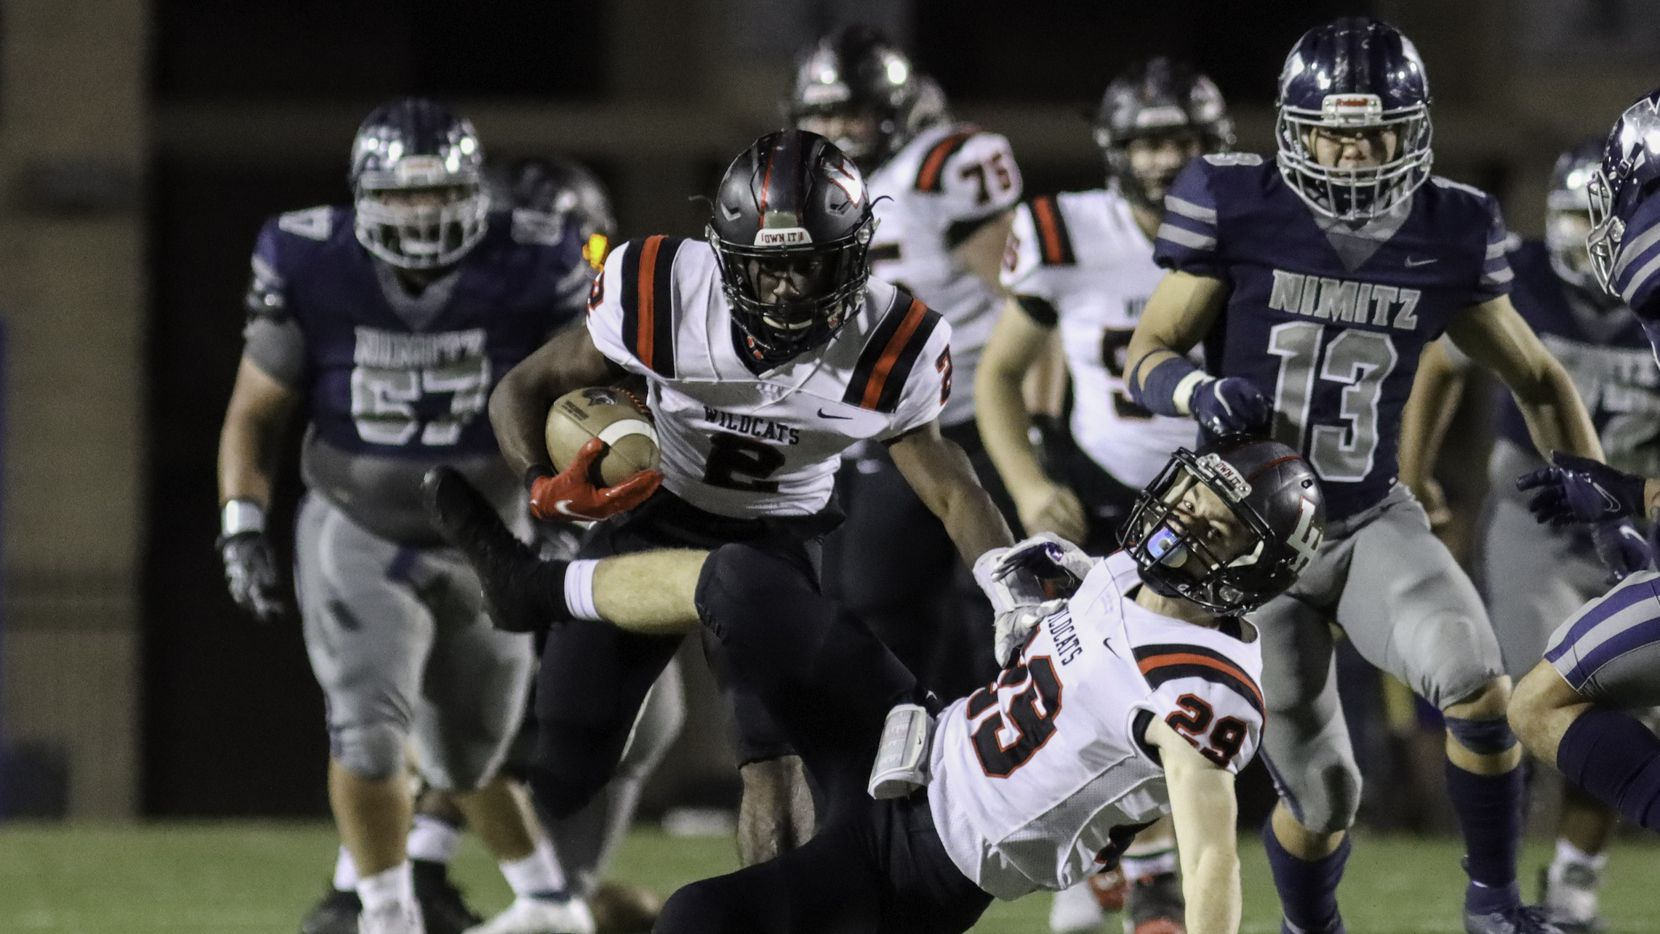 Lake Highlands running back Noelle Whitehead (2) collides with wide receiver Ryan Lucas (29) during the first half against Irving Nimitz at Ellis Stadium in Irving, Friday, November 20, 2020.